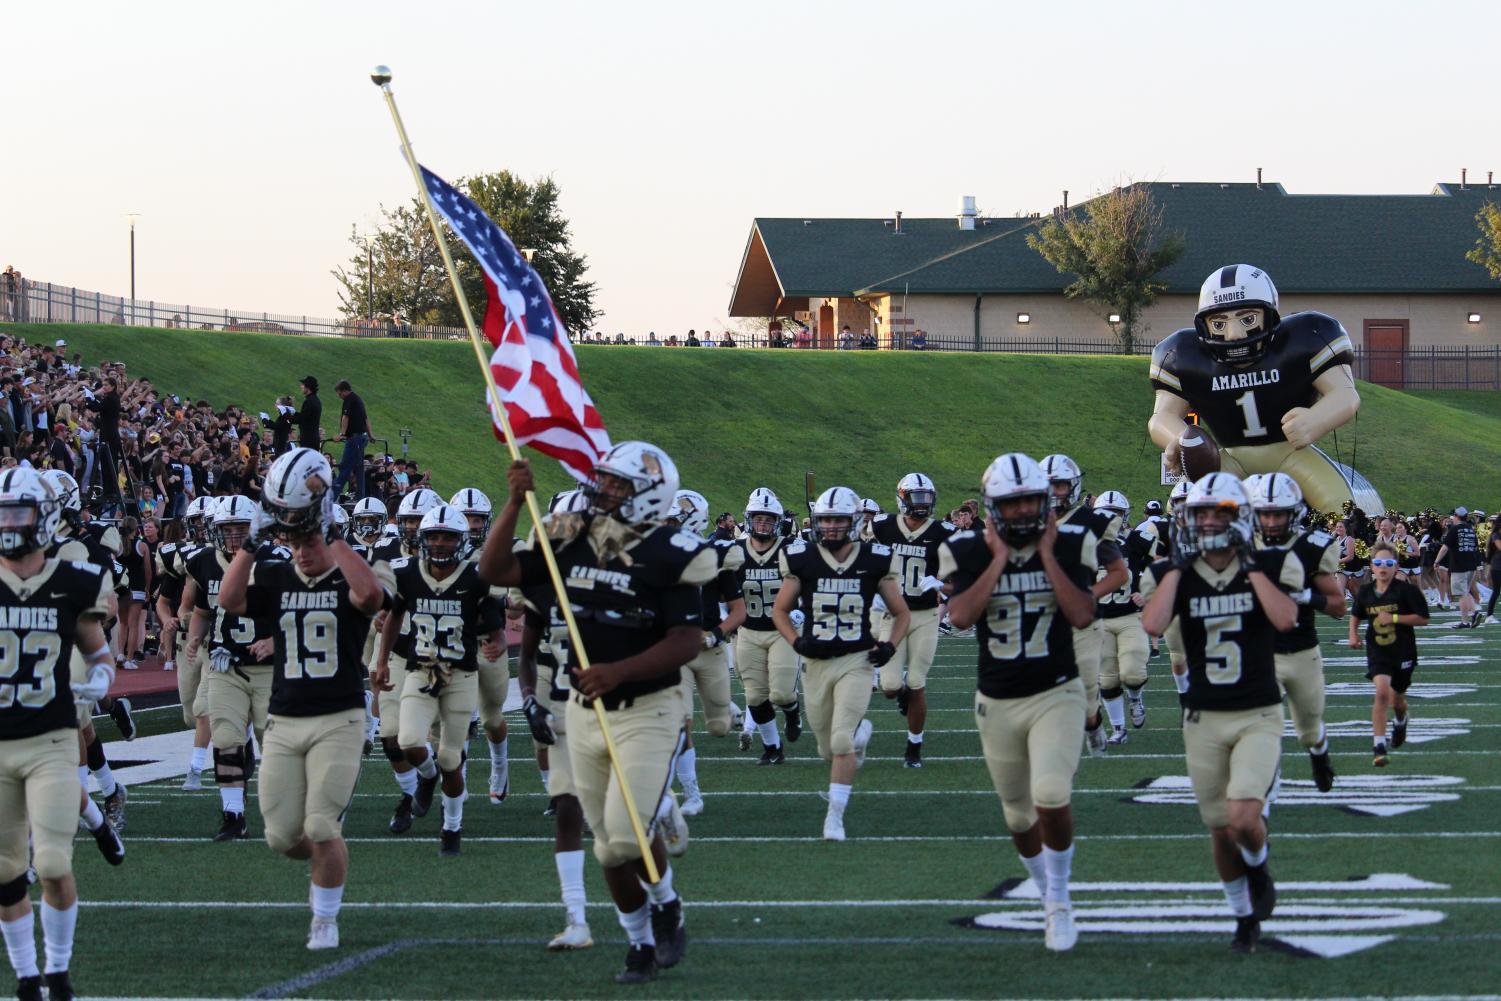 Sandies run onto the field at the start of the game